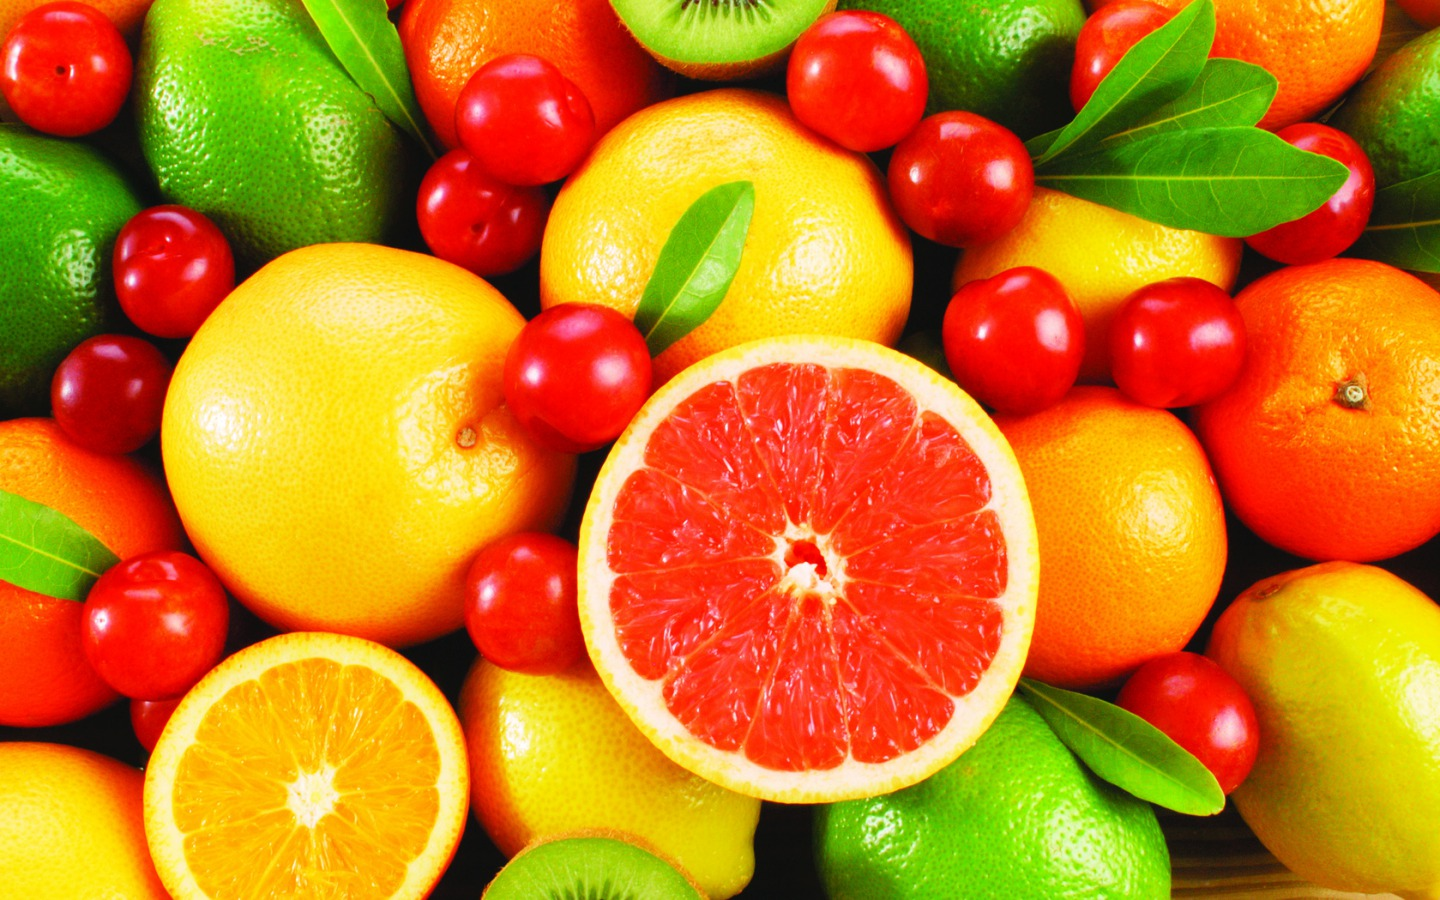 Food images Fruit HD wallpaper and background photos 34261122 1440x900